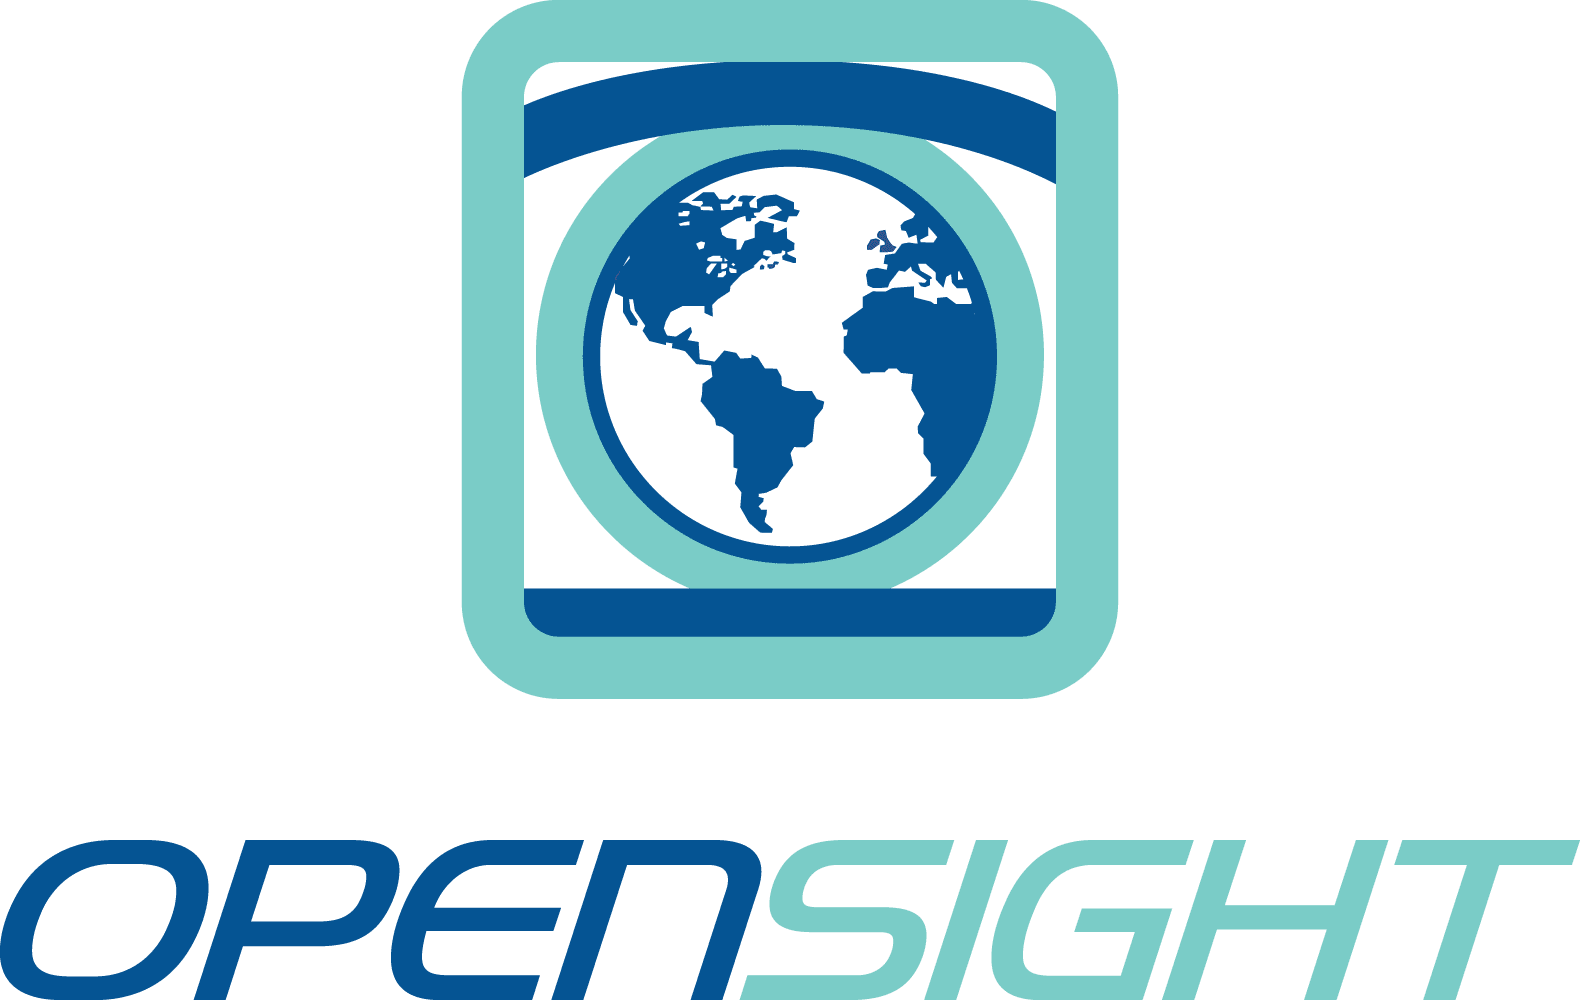 OpenSight Logo, Remote Sensing Intelligence Solutions Software